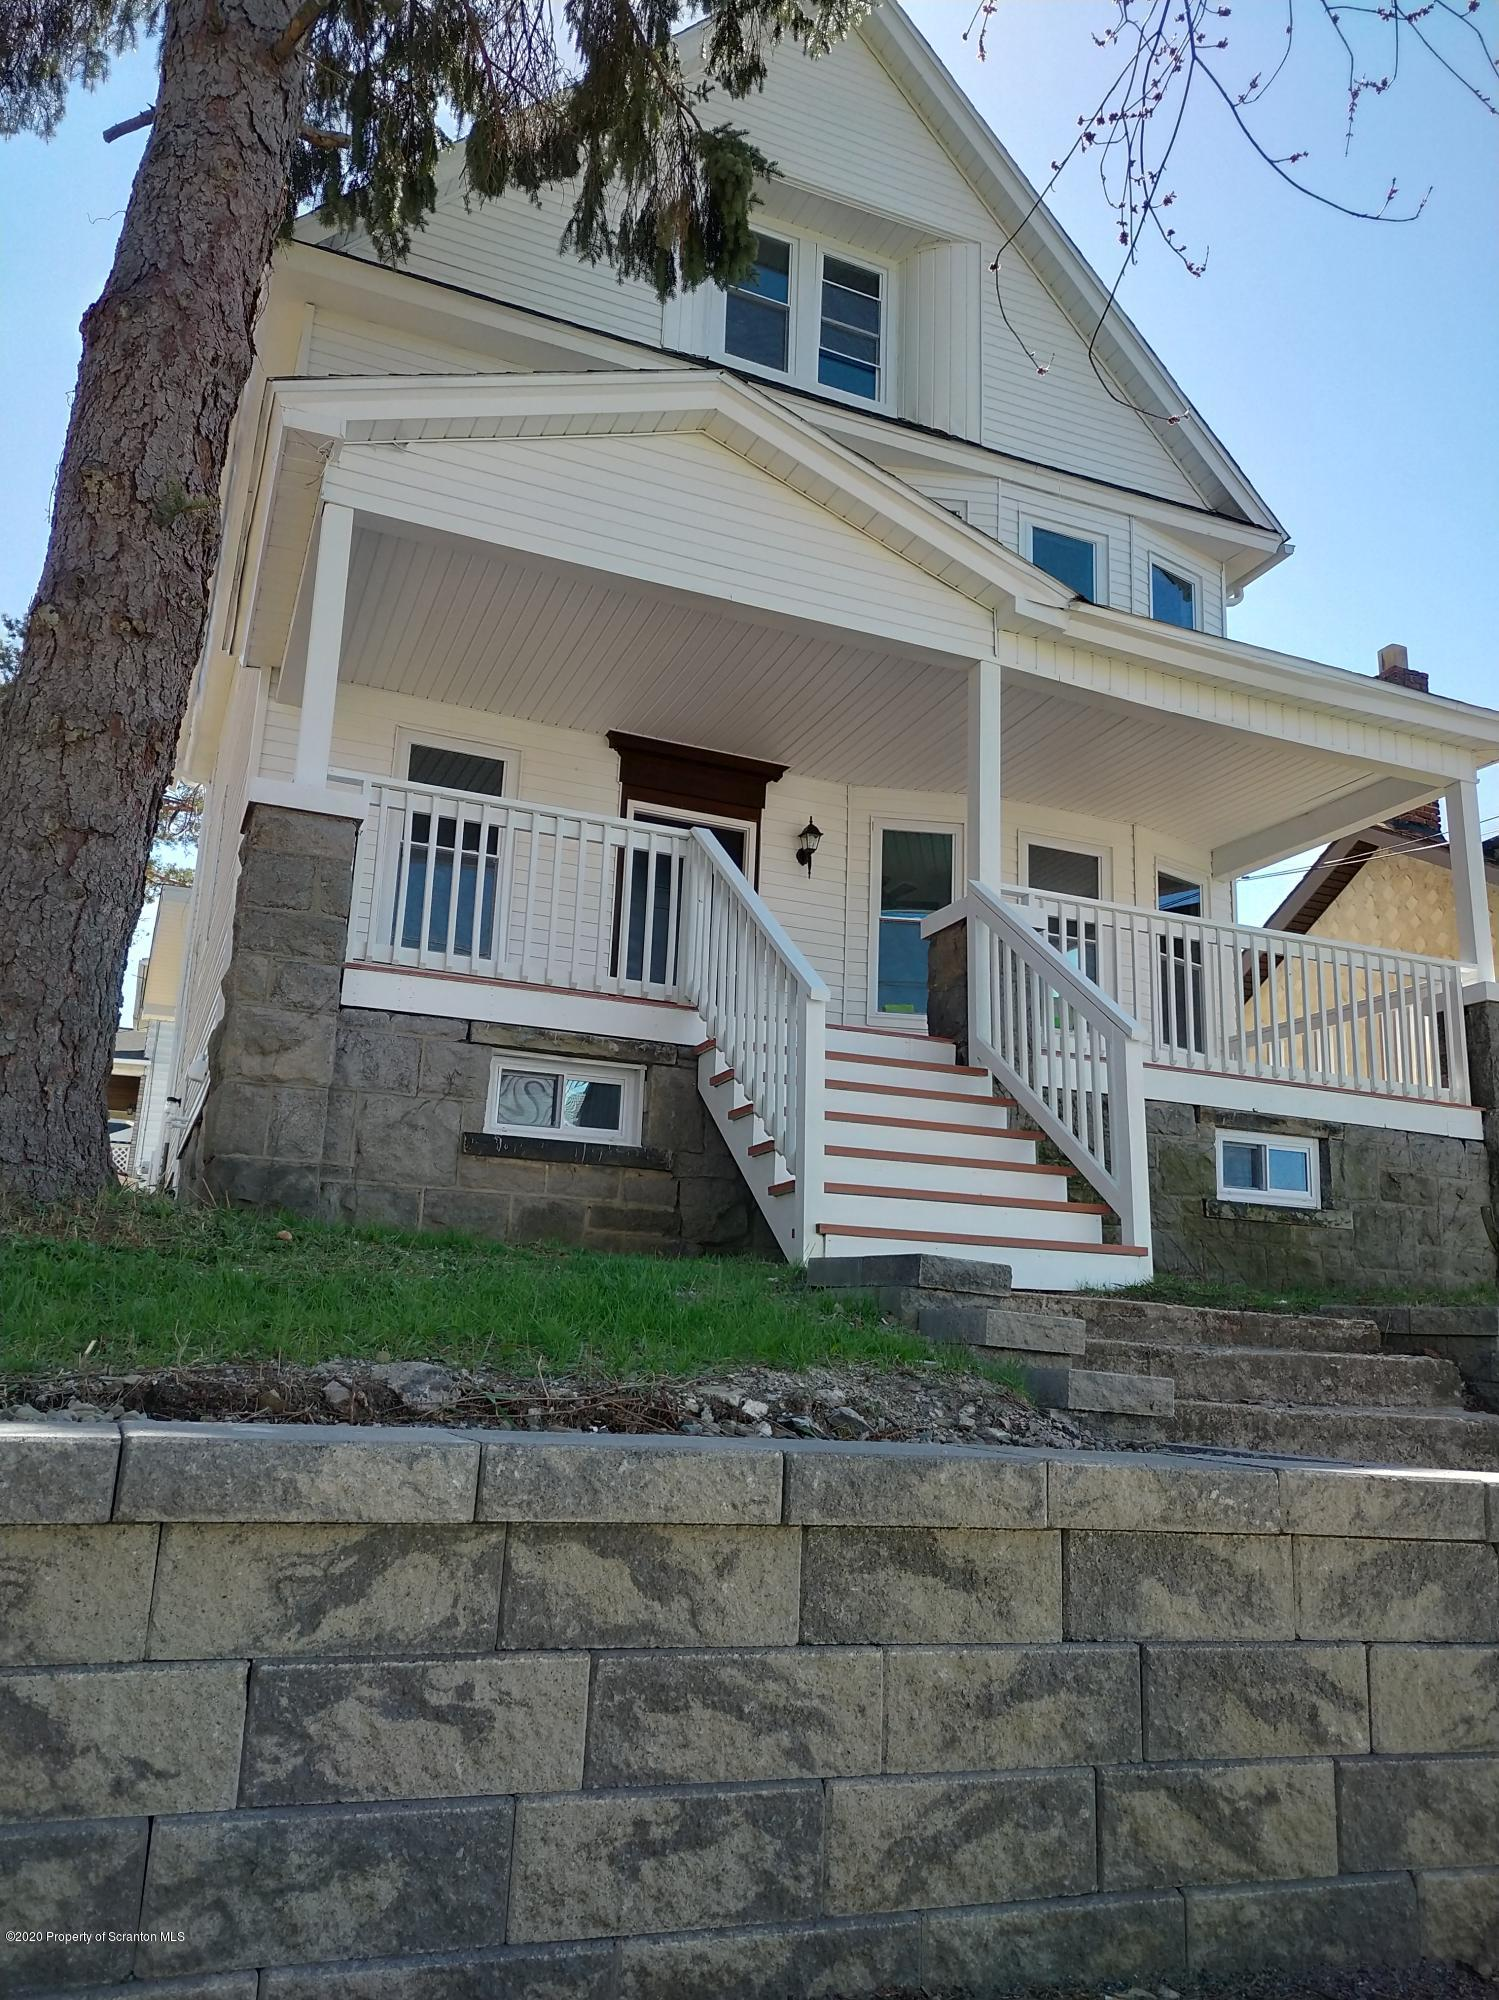 1001 Irving Ave, Scranton, Pennsylvania 18505, 5 Bedrooms Bedrooms, 8 Rooms Rooms,3 BathroomsBathrooms,Single Family,For Sale,Irving,20-1381